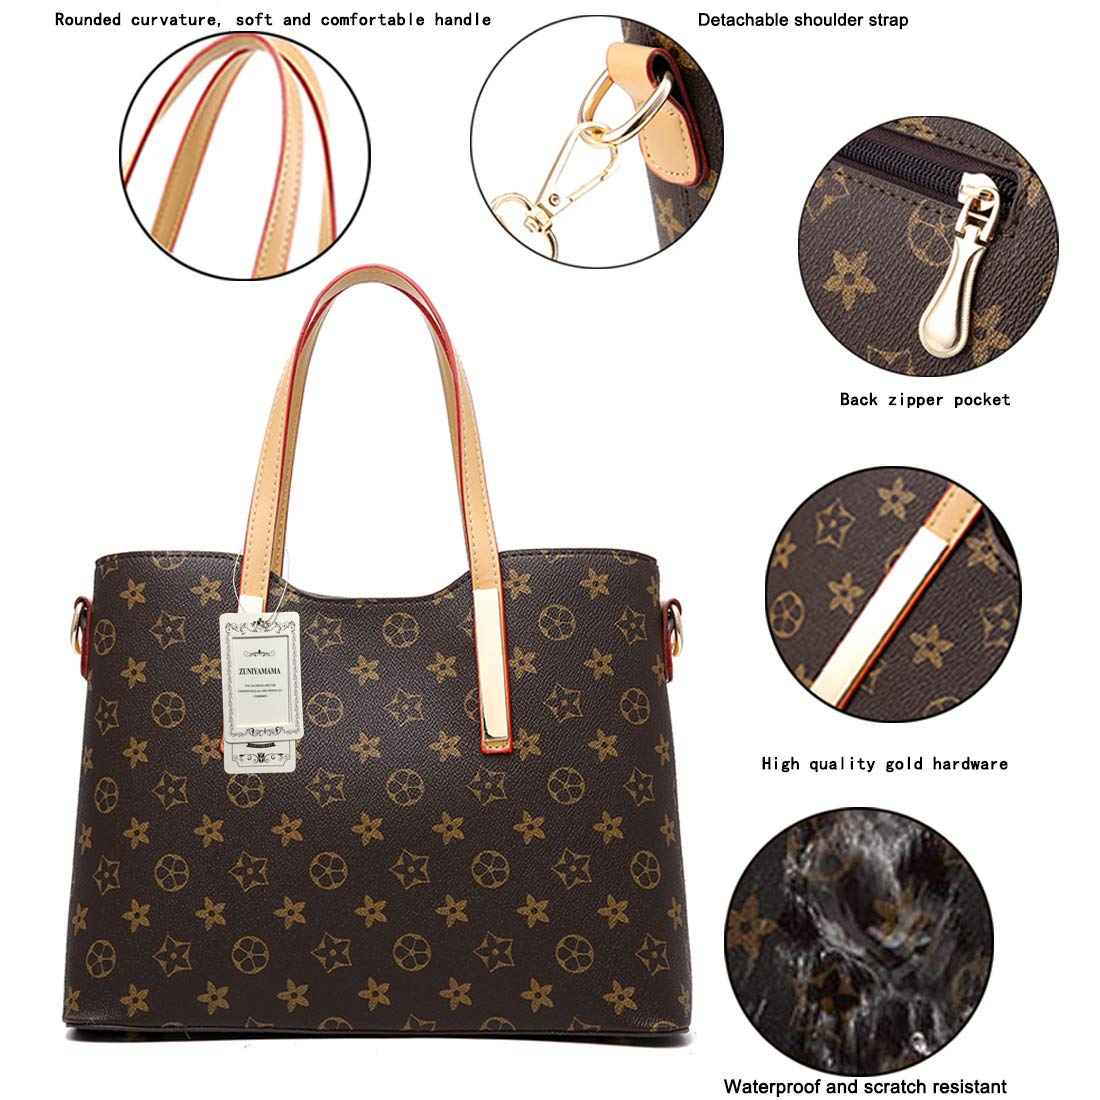 ZUNIYAMAMA Waterproof Scratch Resistant Synthetic Leather Lady Top Handle Handbags Set for Women Purses Shoulder Bag Fashion Tote Bags Casual Daypack by ZUNIYAMAMA (Image #3)